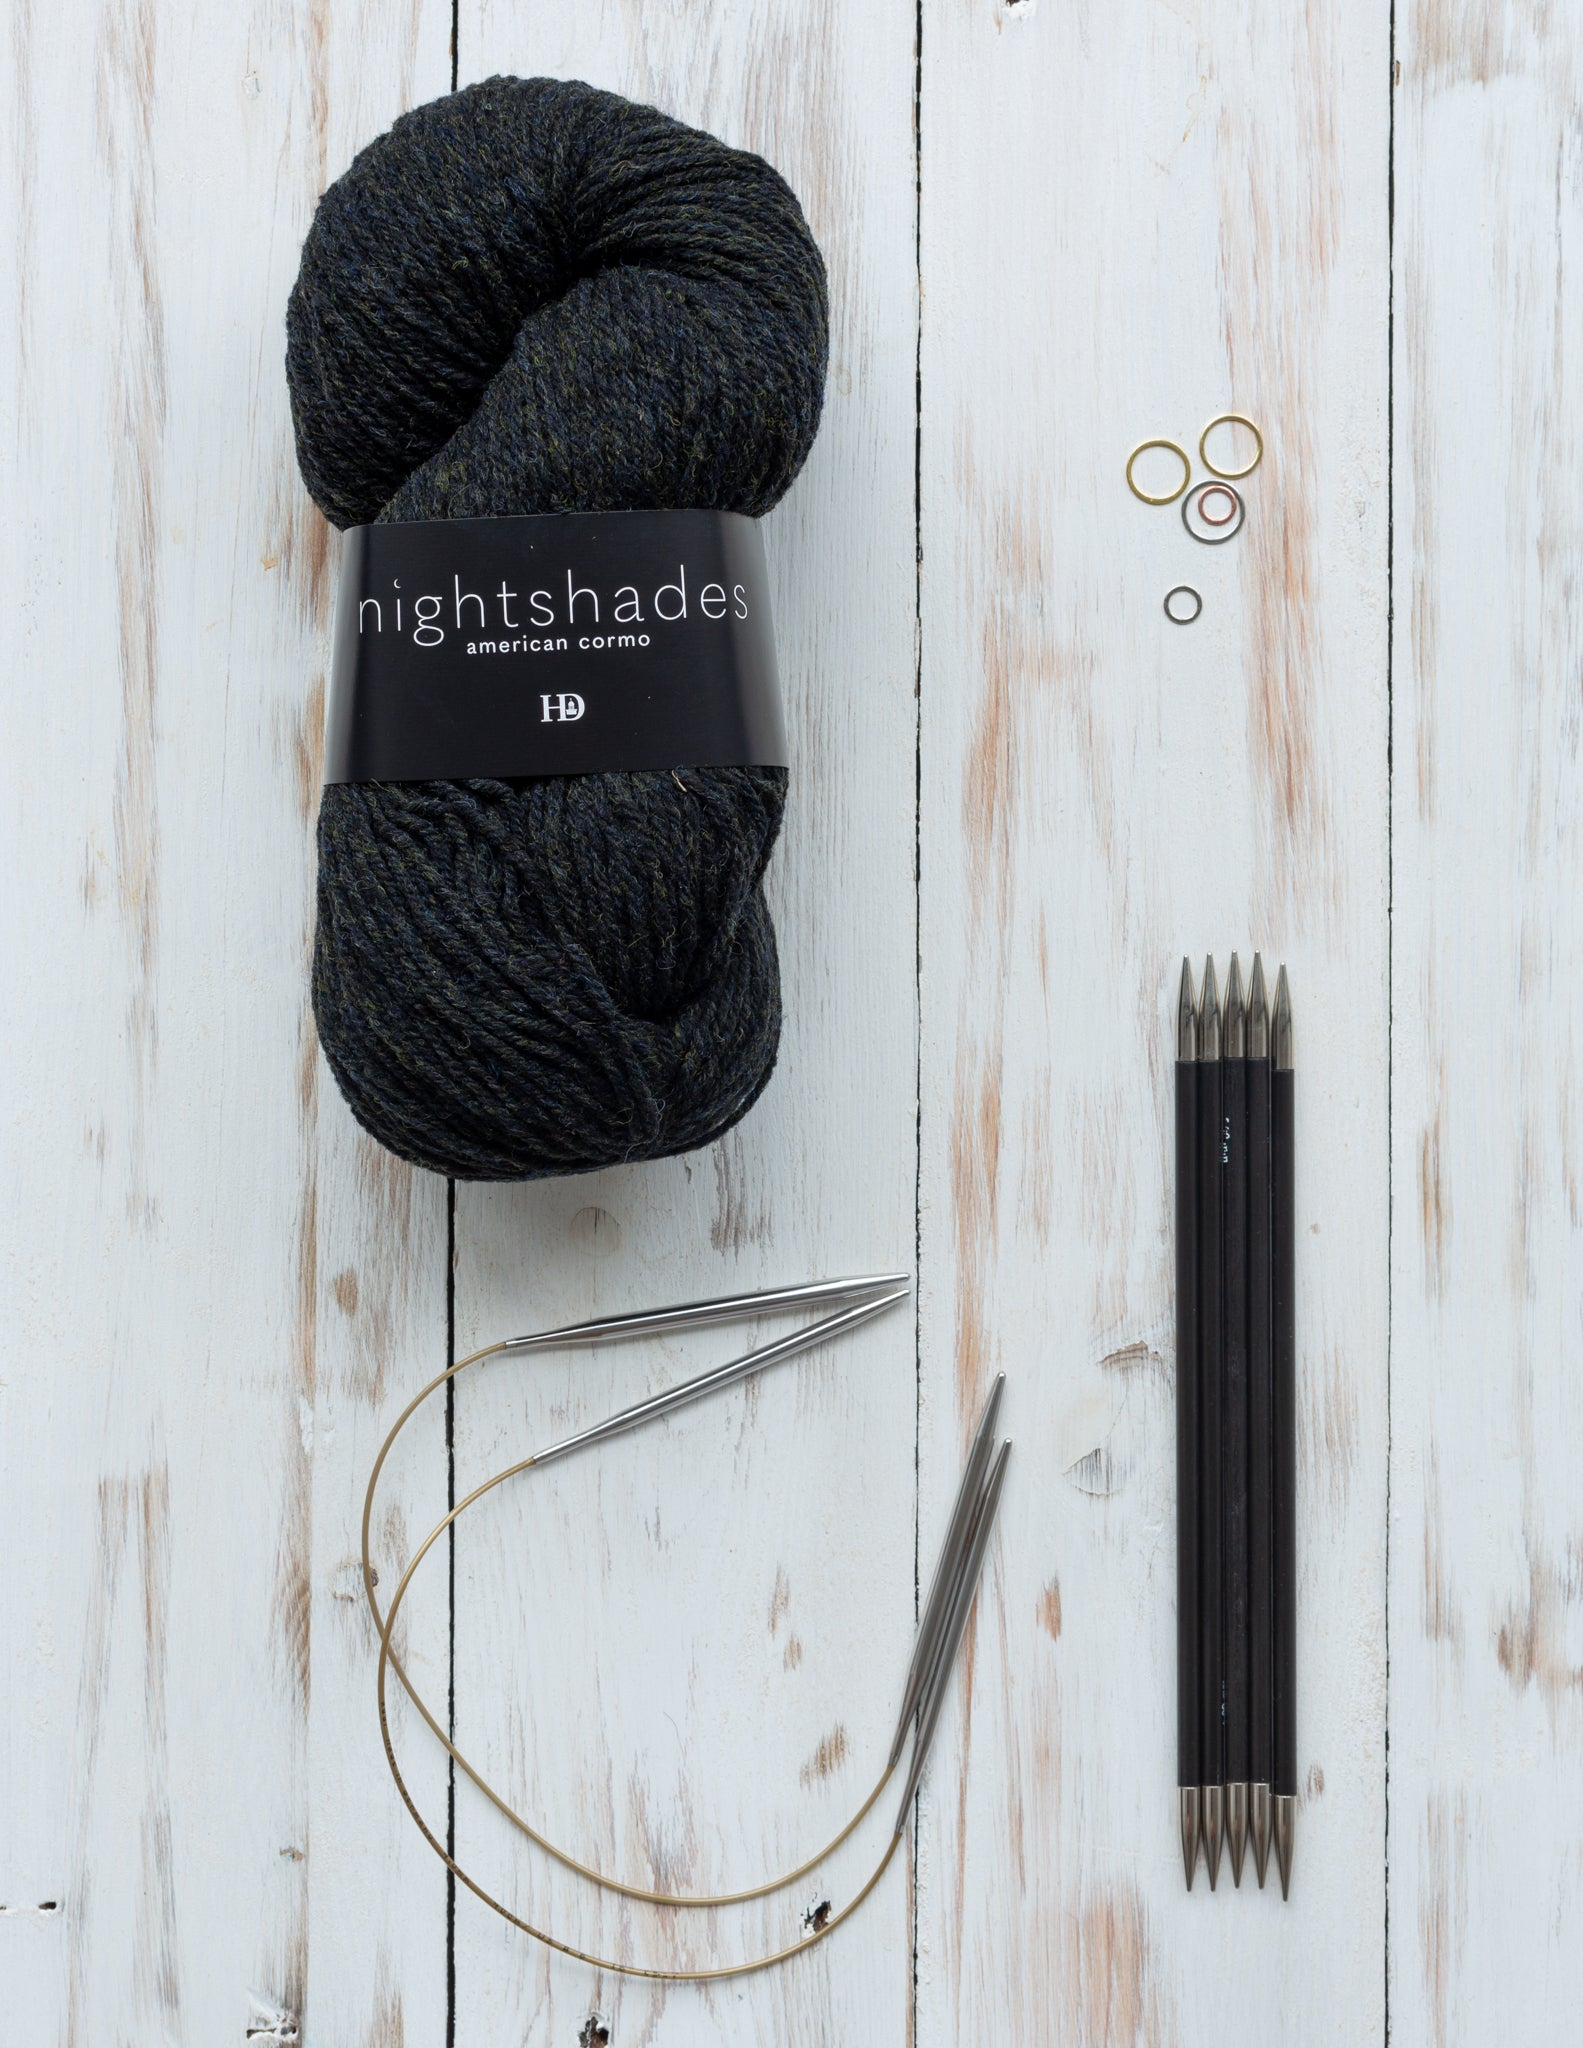 A skein of Harrisville Nightshades, with circular and double pointed needles on wooden surface